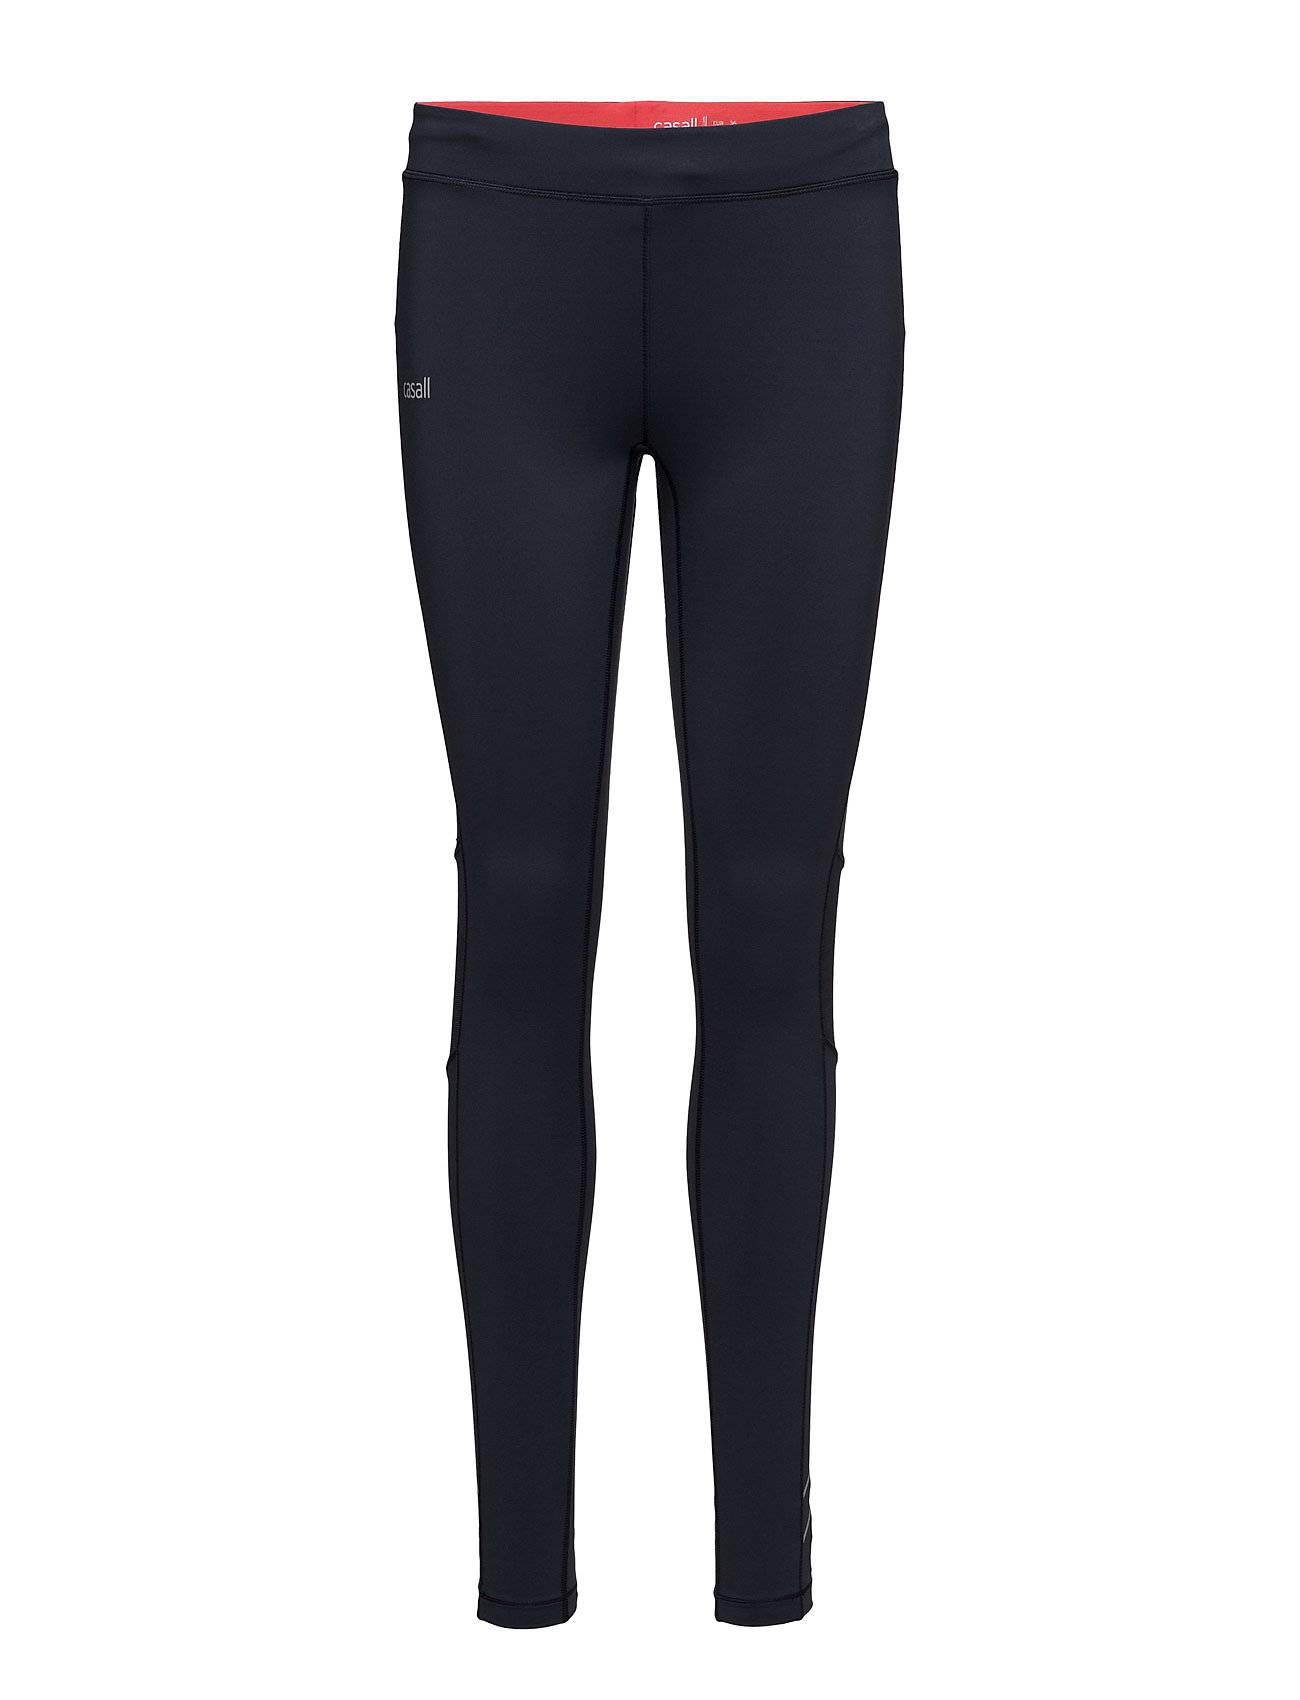 Casall Run Blocked Tights